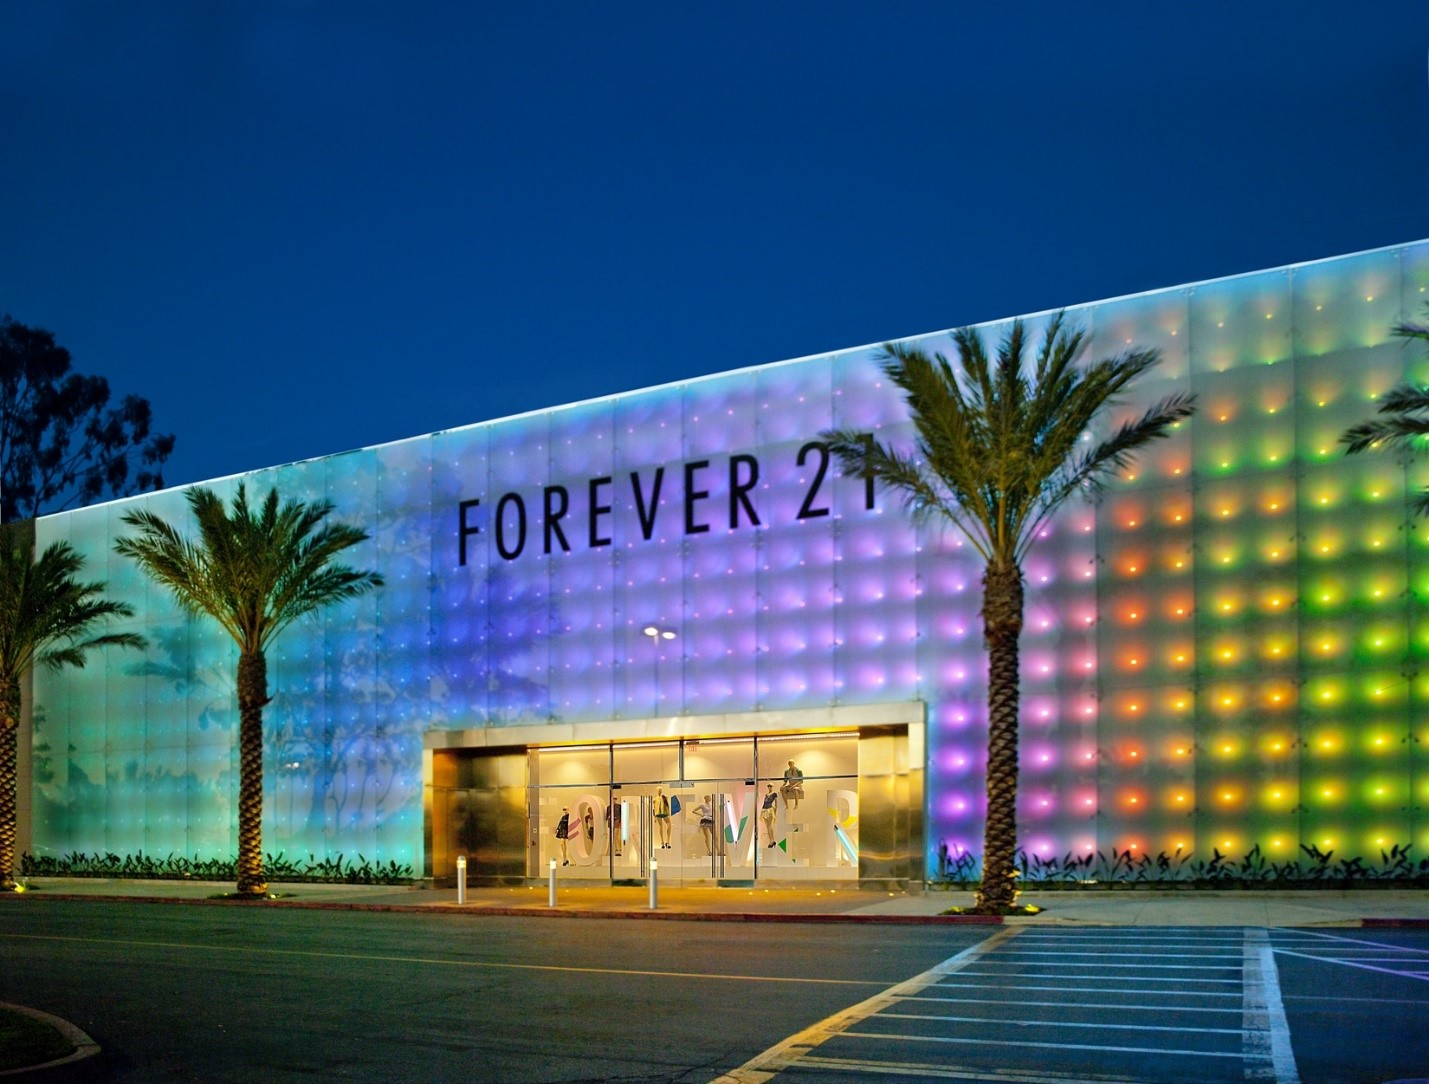 Shop at Forever 21 with coupons to save money